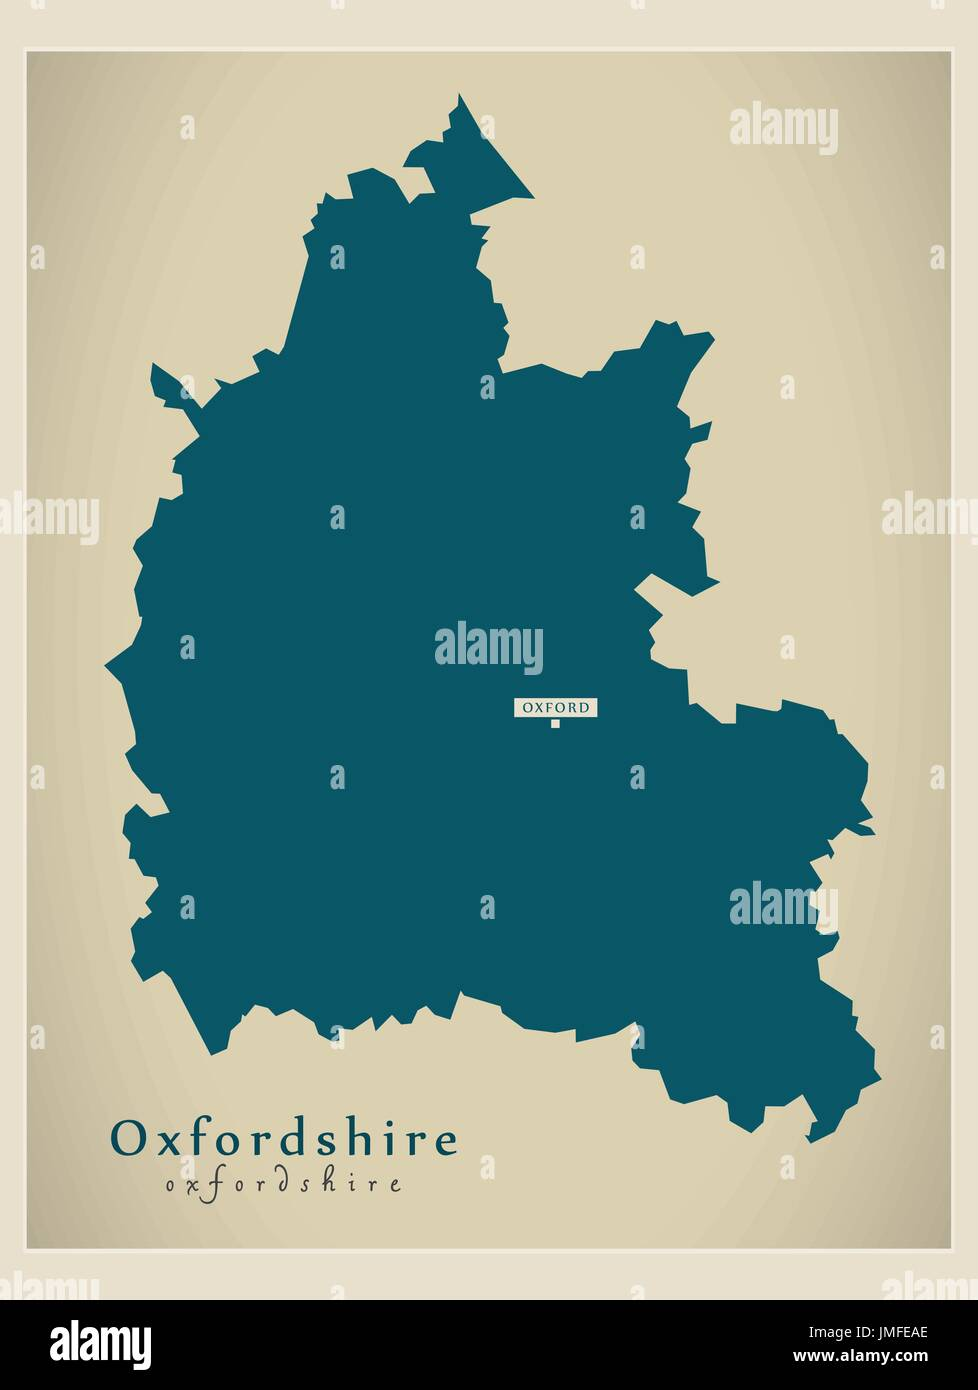 Modern Map Oxfordshire County England Uk Illustration Stock Vector